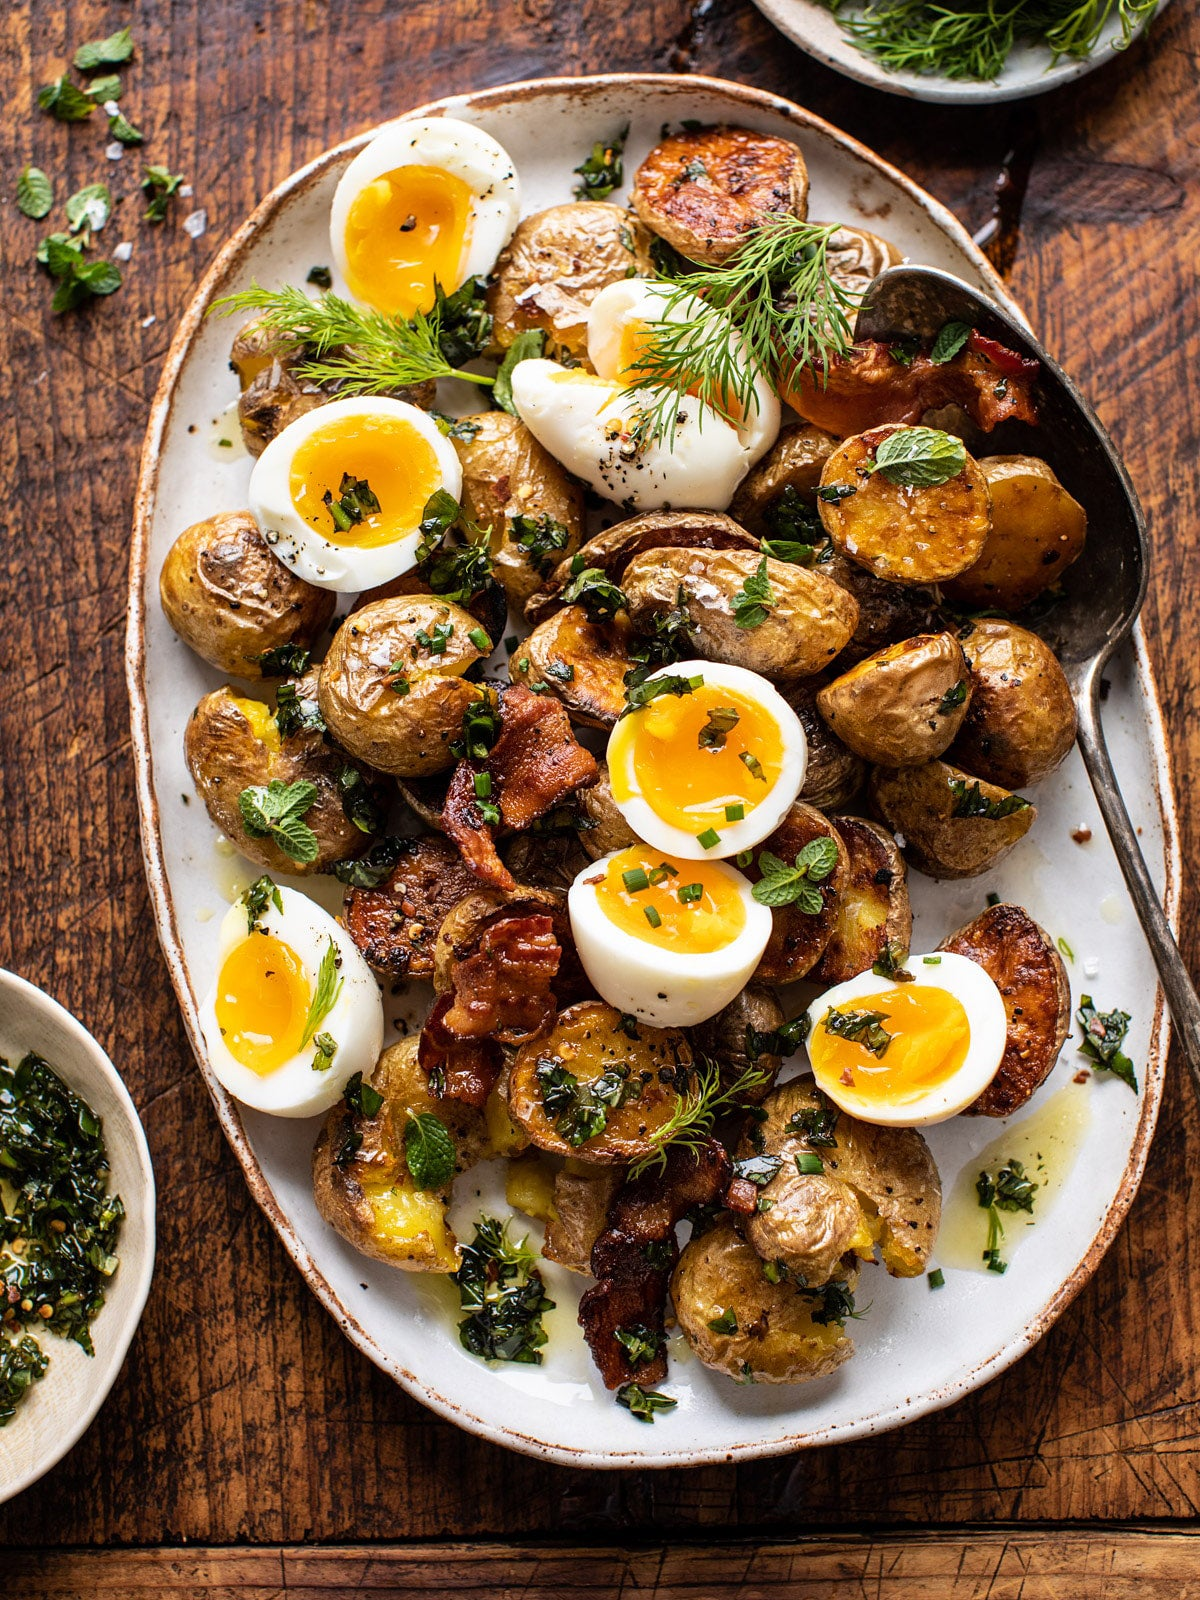 Breakfast Potatoes With Soft-Boiled Eggs